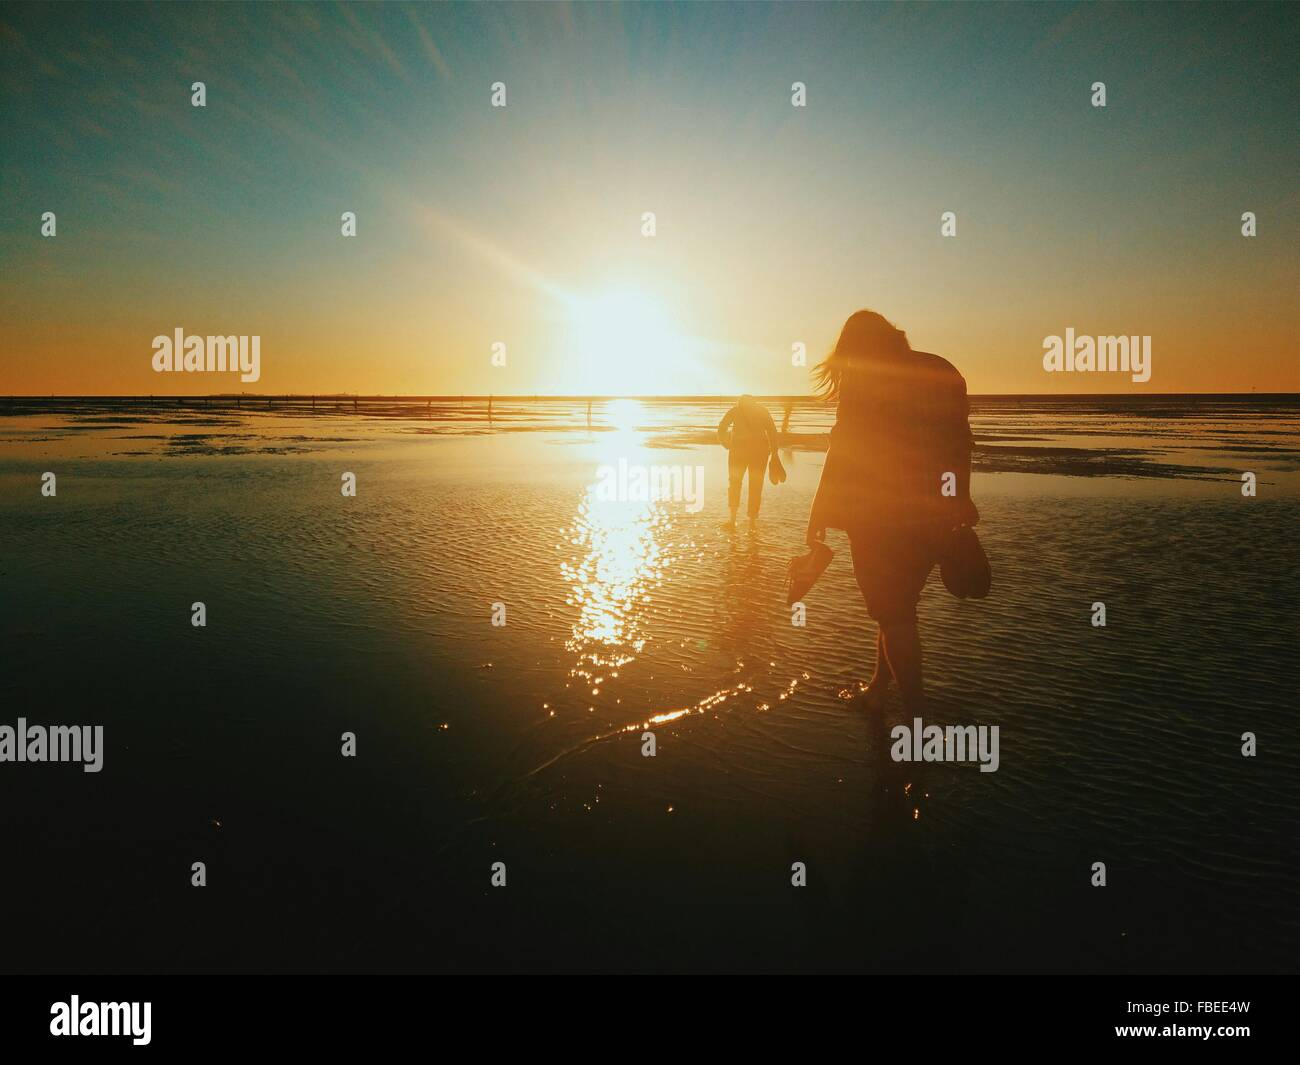 Silhouette People Walking On Beach at Sunset Photo Stock